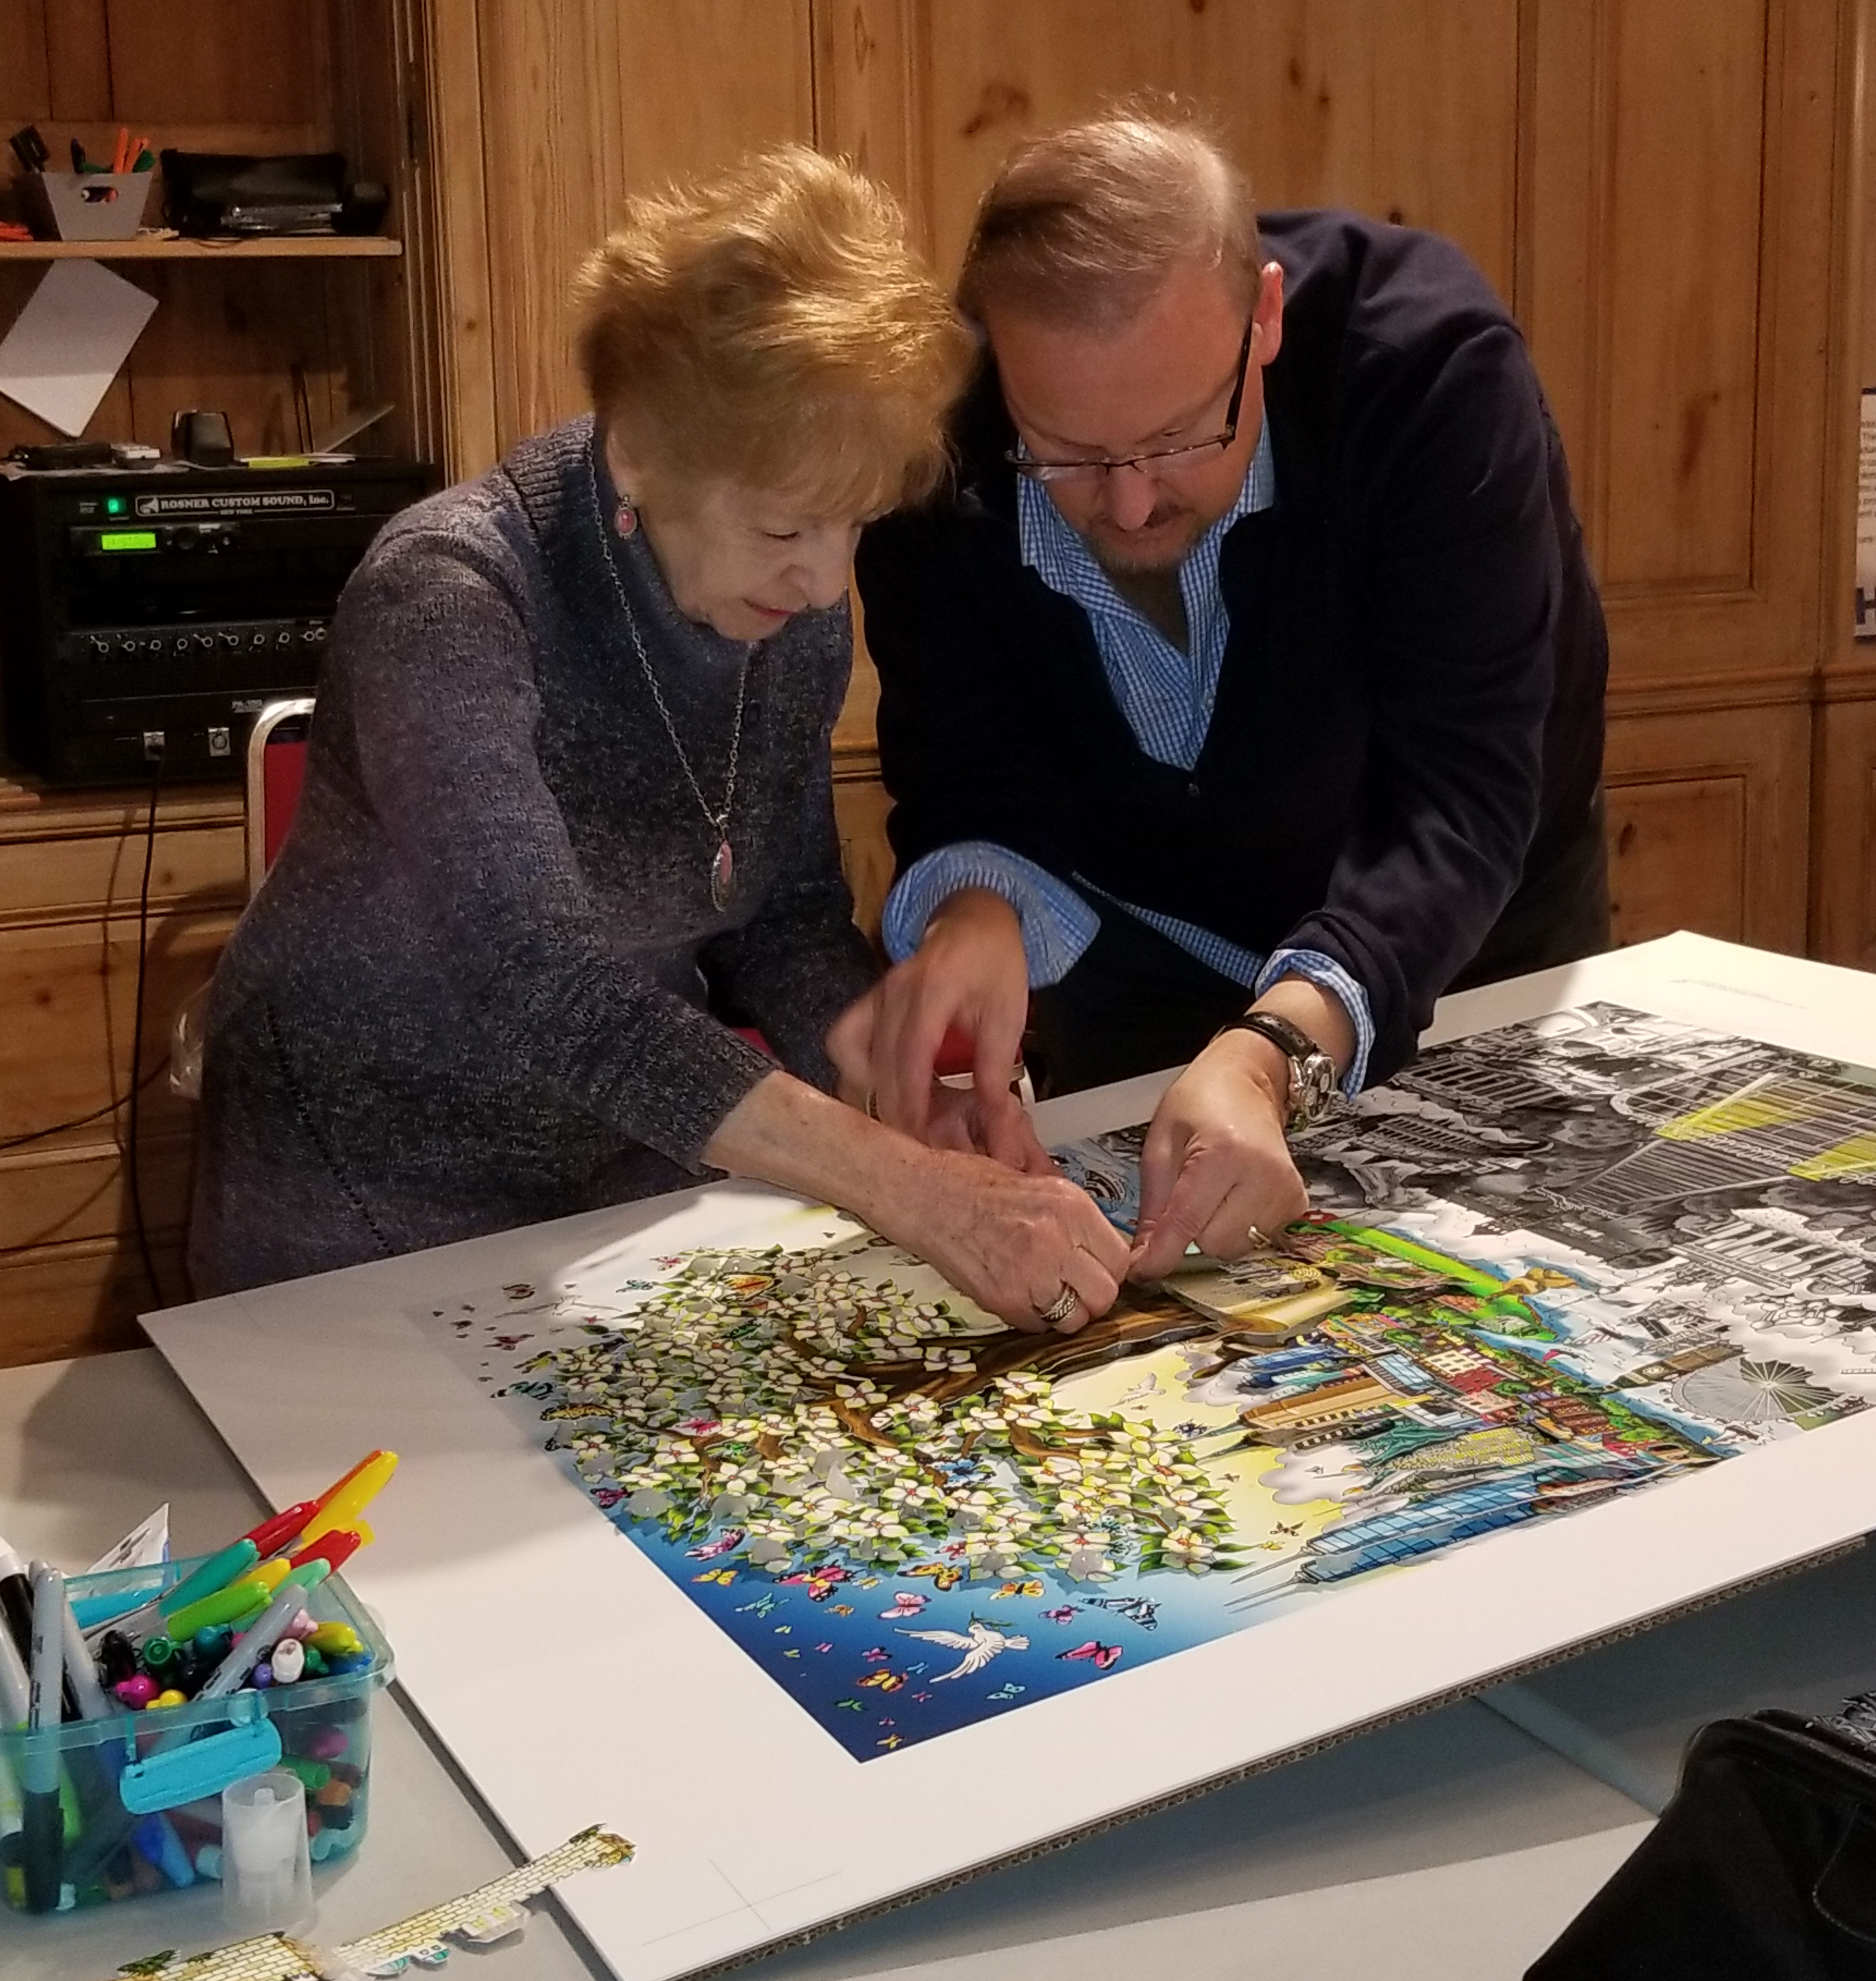 """Charles Fazzino and Holocaust survivor work on recreating 3d pop art piece """"After the Darkness."""""""